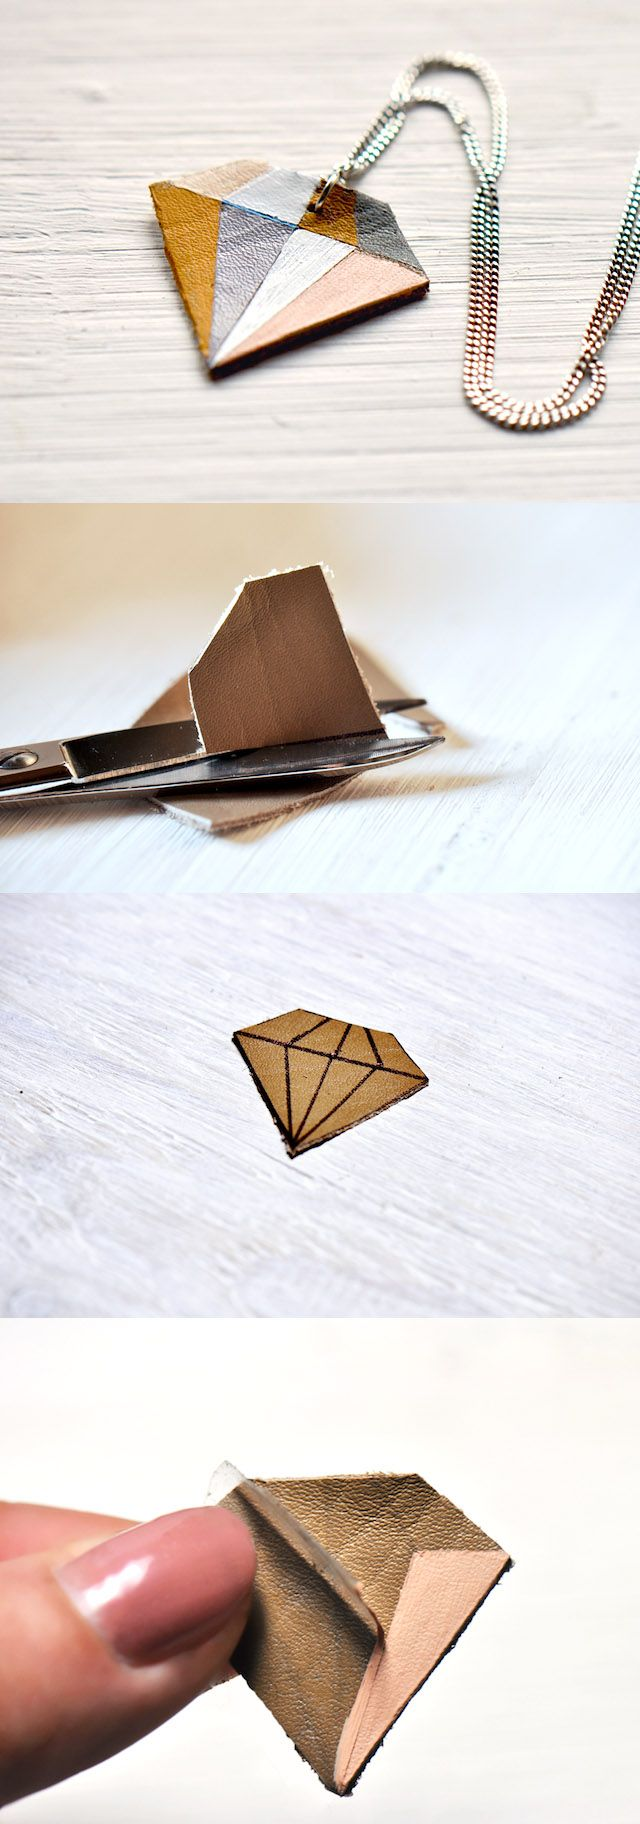 DIY: Geometric Diamond Leather Necklace for leather bling. Might have good tips for how to piece together.